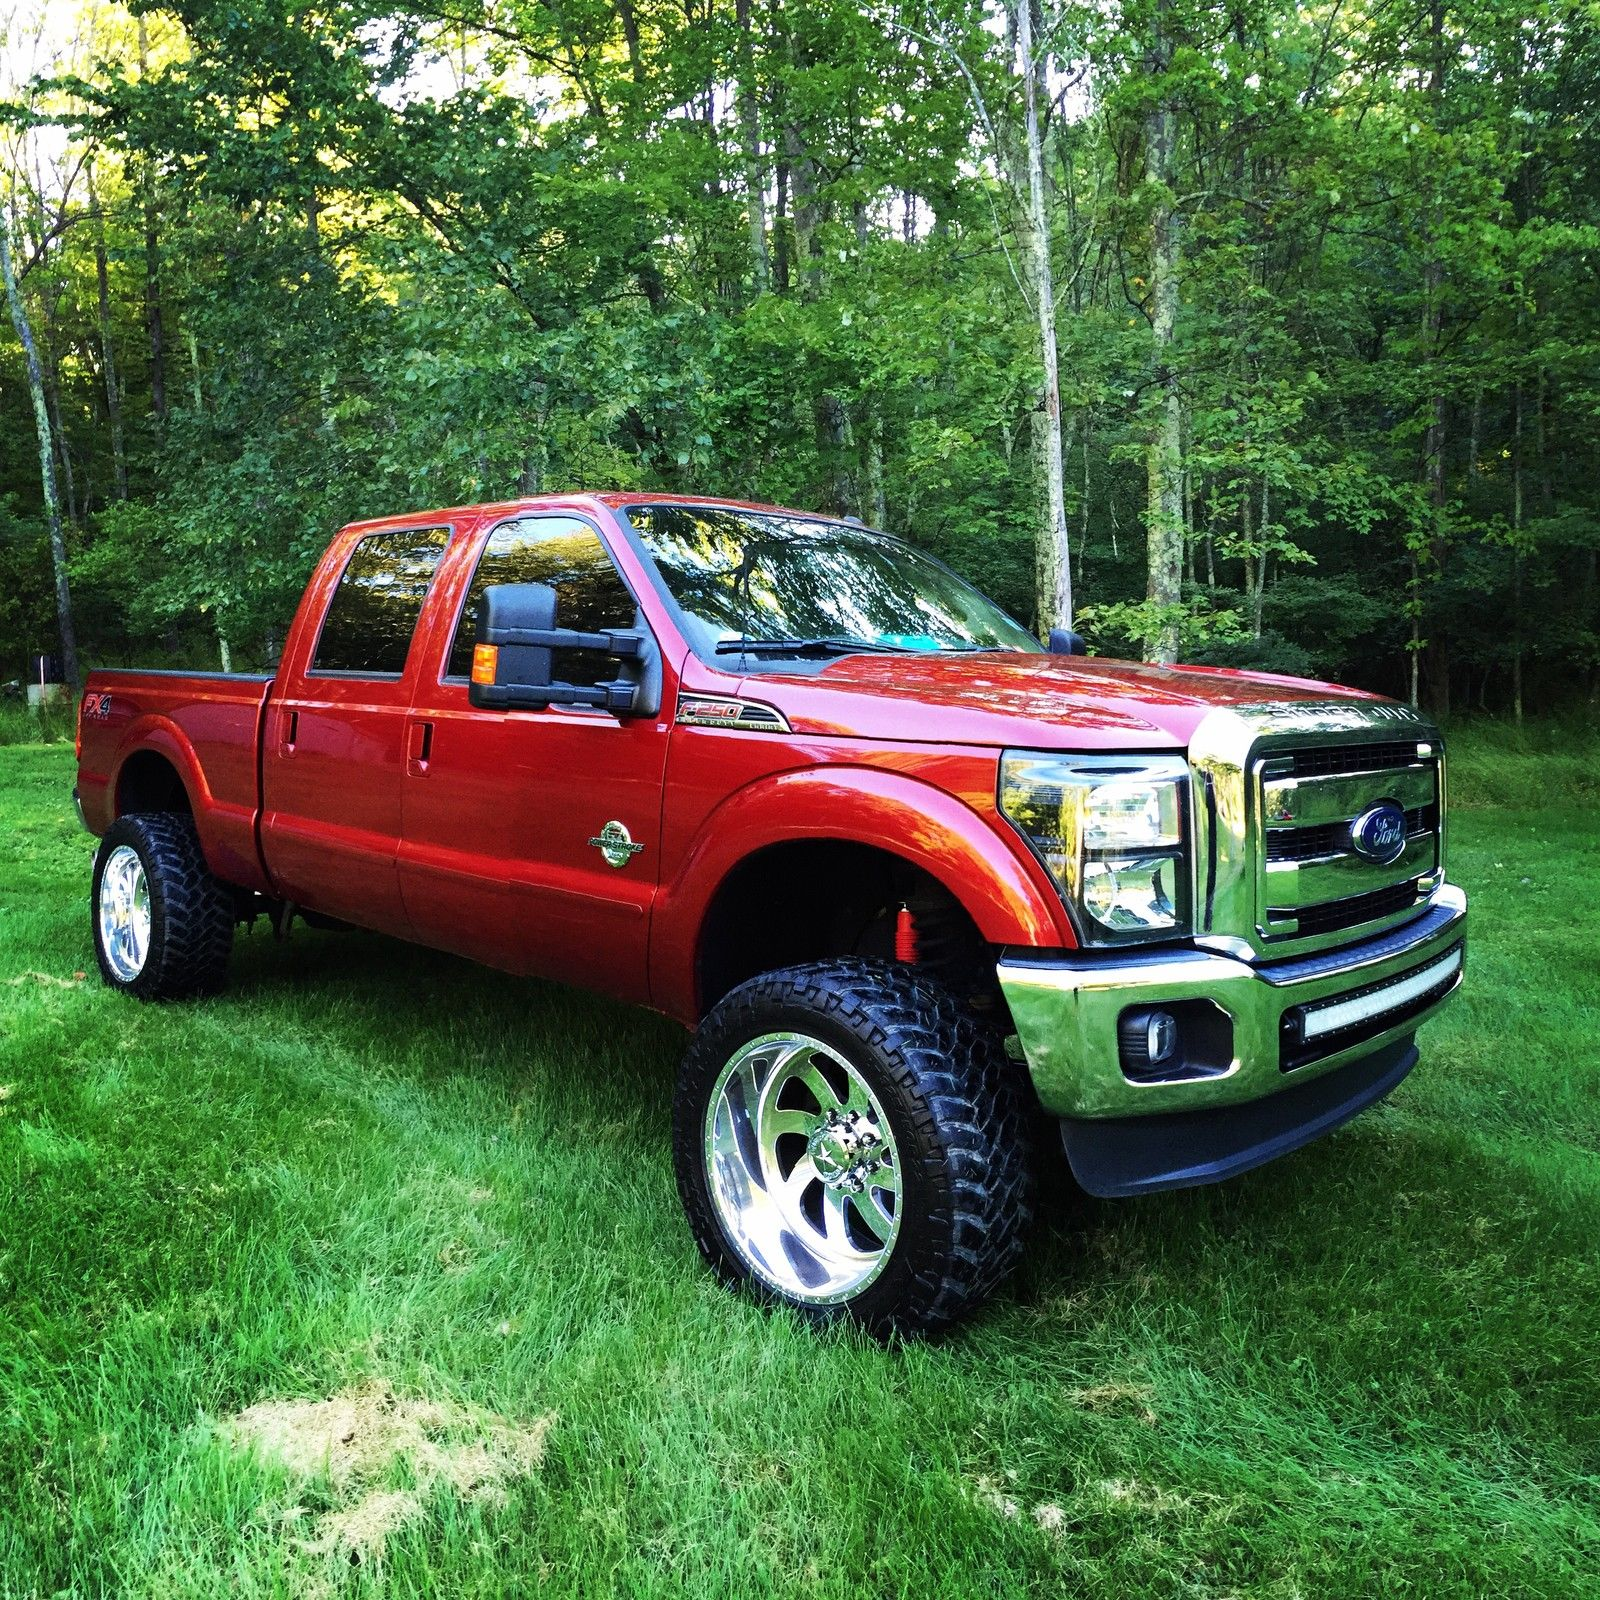 2014 ford f250 lariat crew cab 6 7l diesel lifted for sale. Black Bedroom Furniture Sets. Home Design Ideas